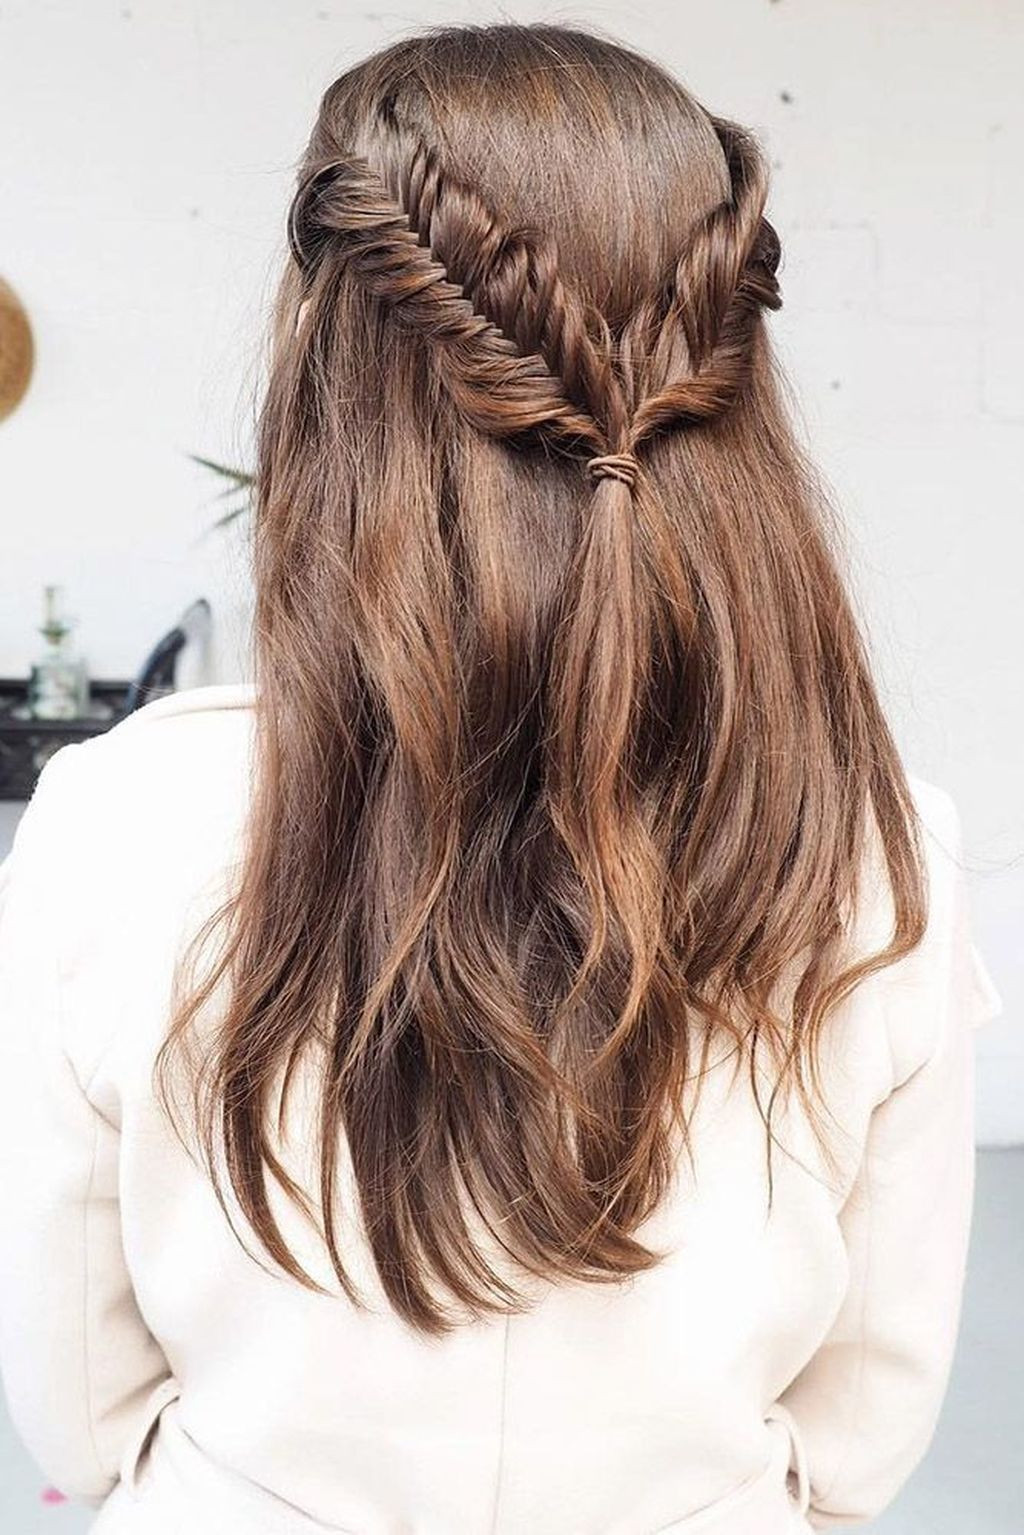 Wedding Guest Hairstyles DIY  36 Fashionable Hairstyle Ideas For Summer Wedding Guest